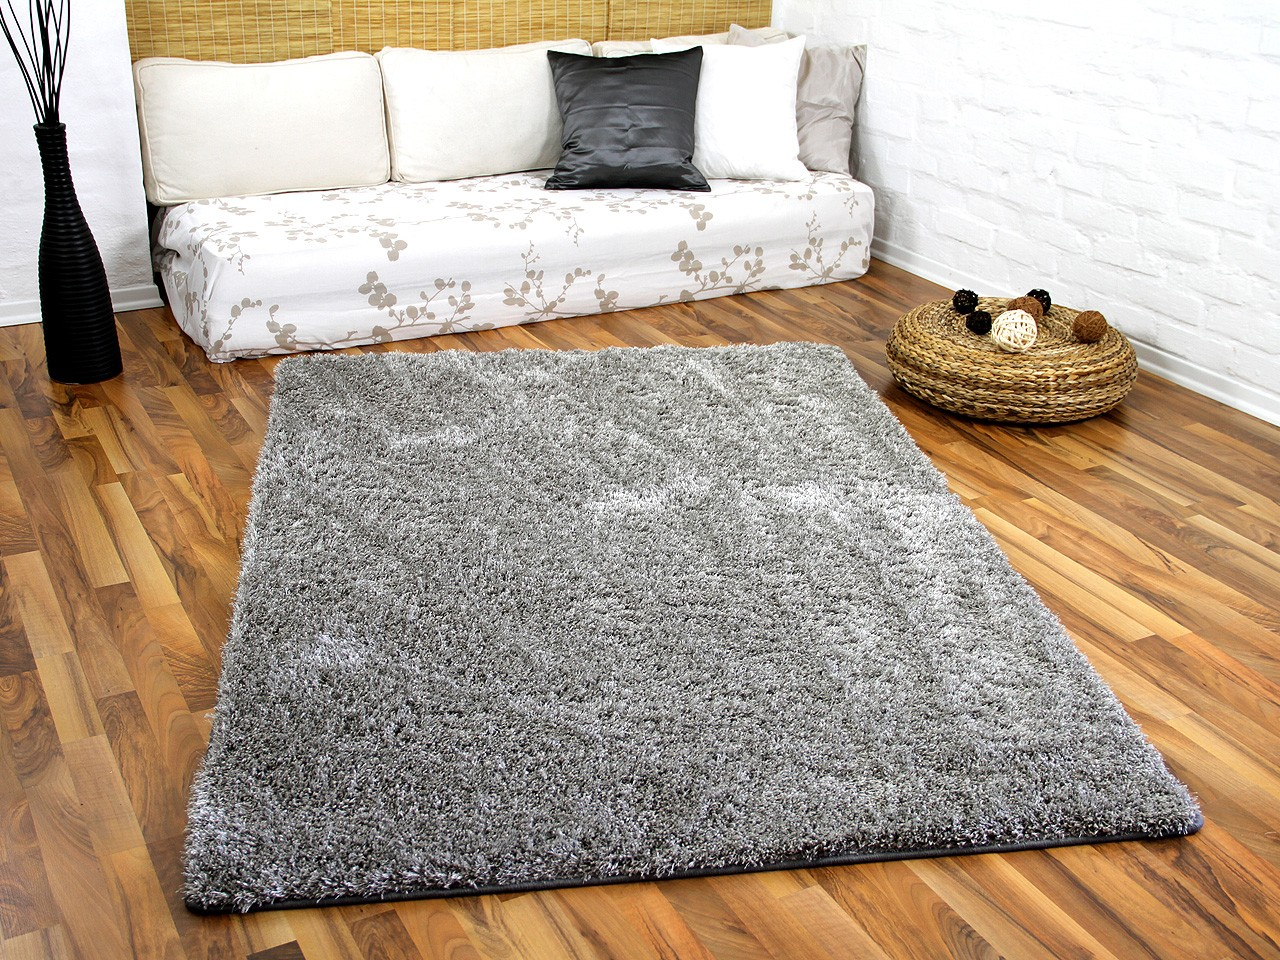 Shaggy Teppich Saugroboter Hochflor Shaggy Teppich Luxus Feeling Mix Silber In 24